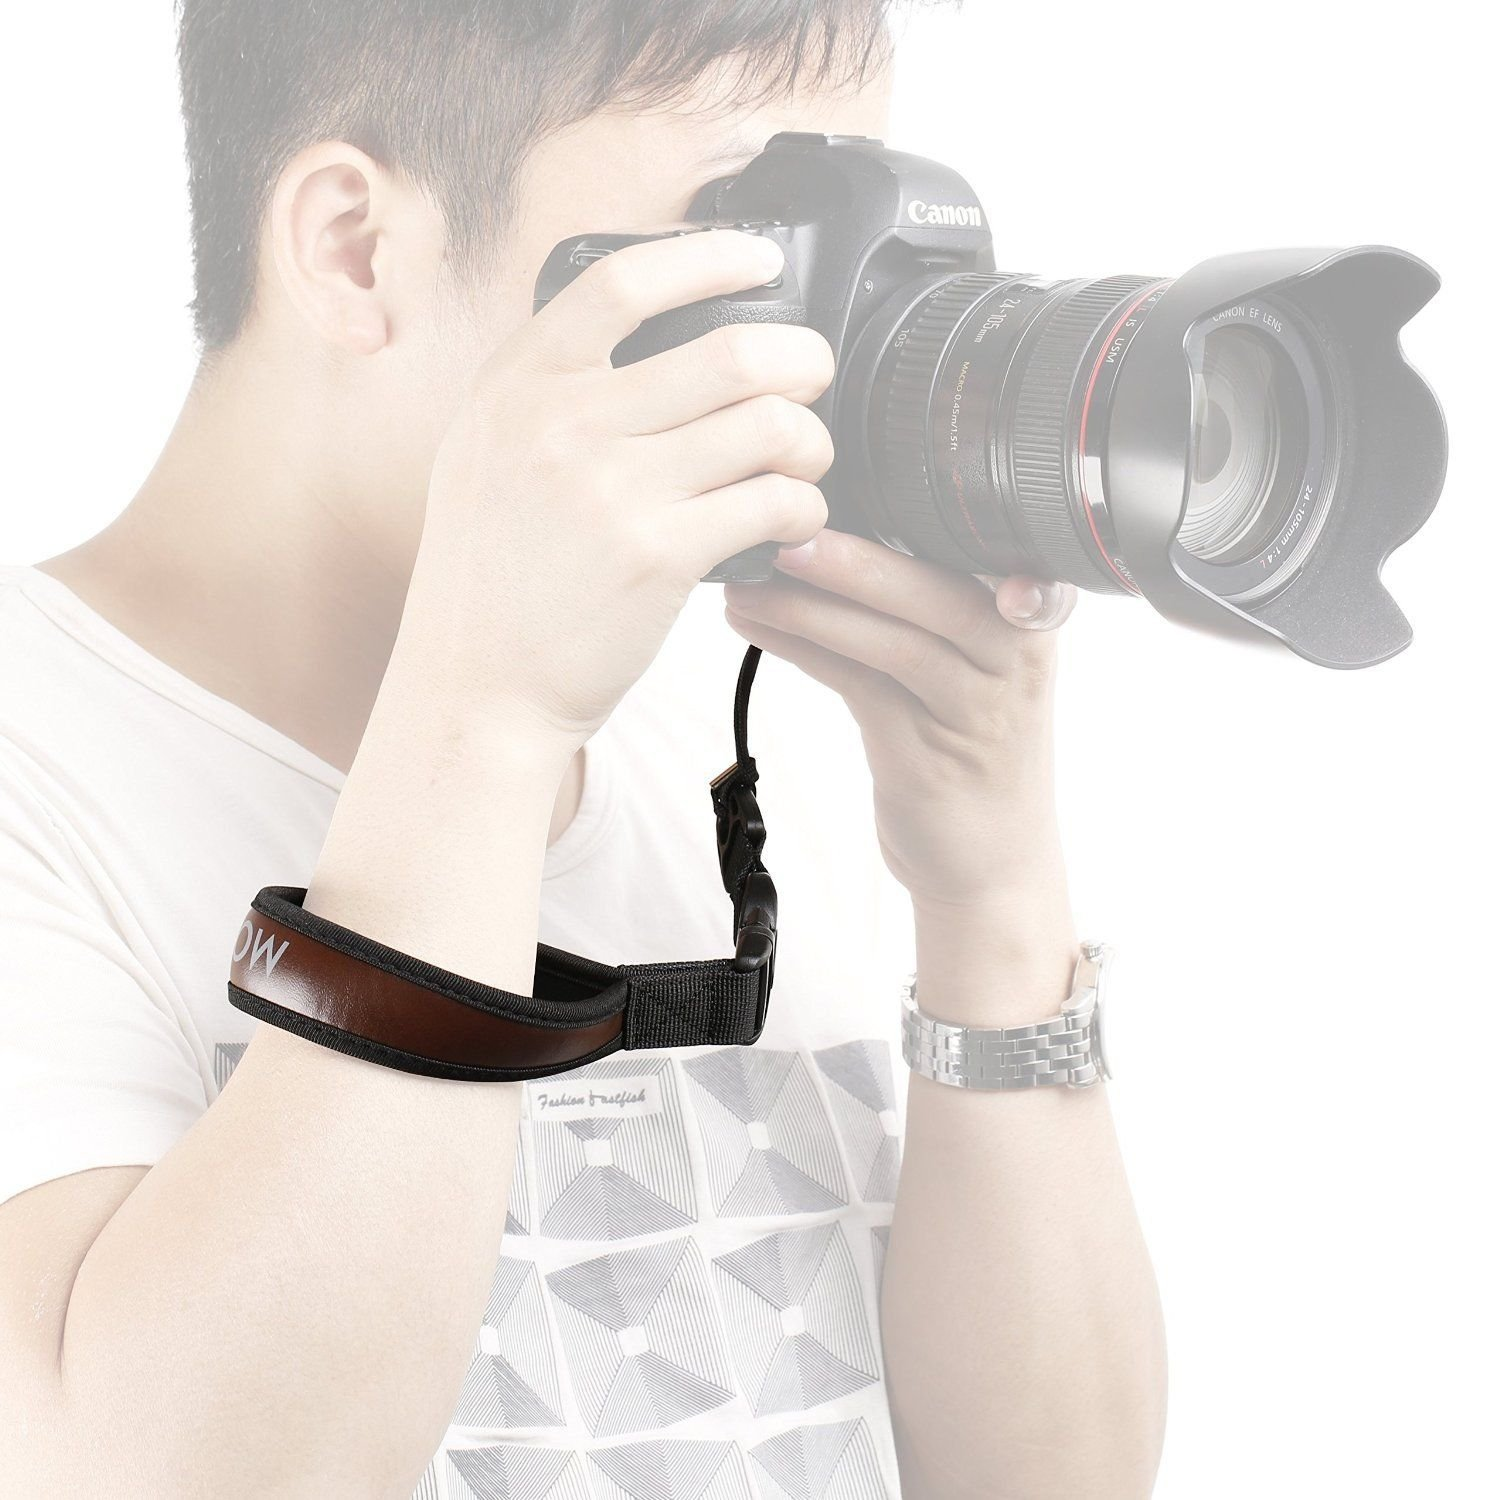 Movo Photo NS-6 Neoprene Camera Wrist Strap with Quick-Action Release Clip (Attaches Securely via Tripod Mount) - for Canon EOS, Nikon, Sony, Olympus, Pentax & Panasonic DSLR & Mirrorless Cameras